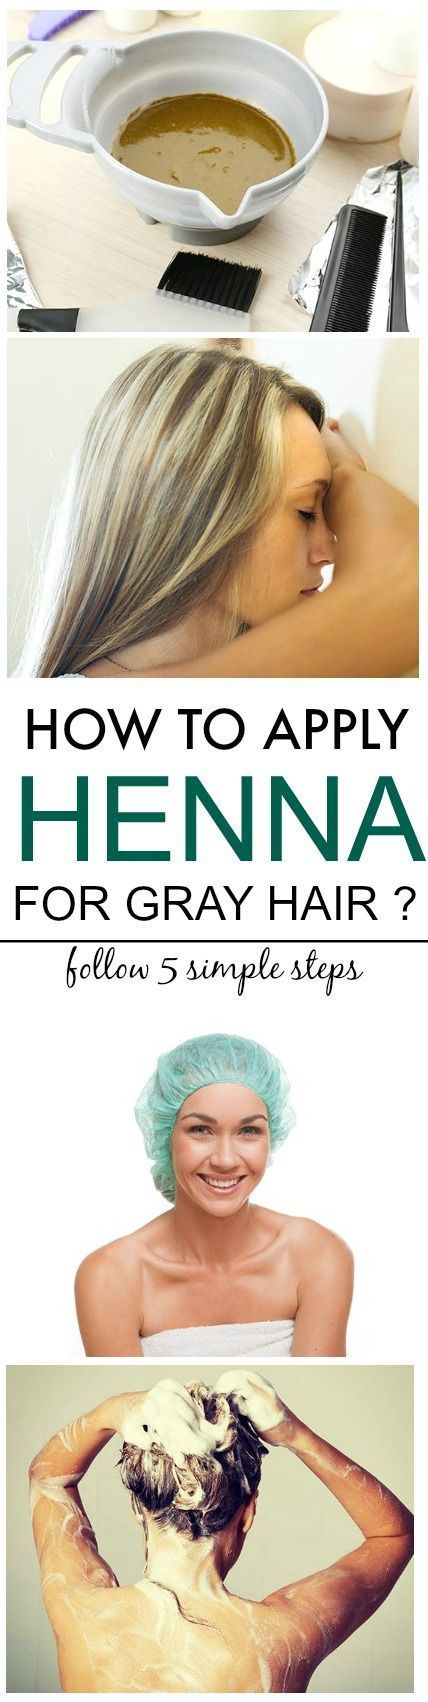 If you are feeling annoyed with grey hair, you can easily cover them using a natural remedy i.e., henna. Here are 5 basic steps to apply henna for grey hair